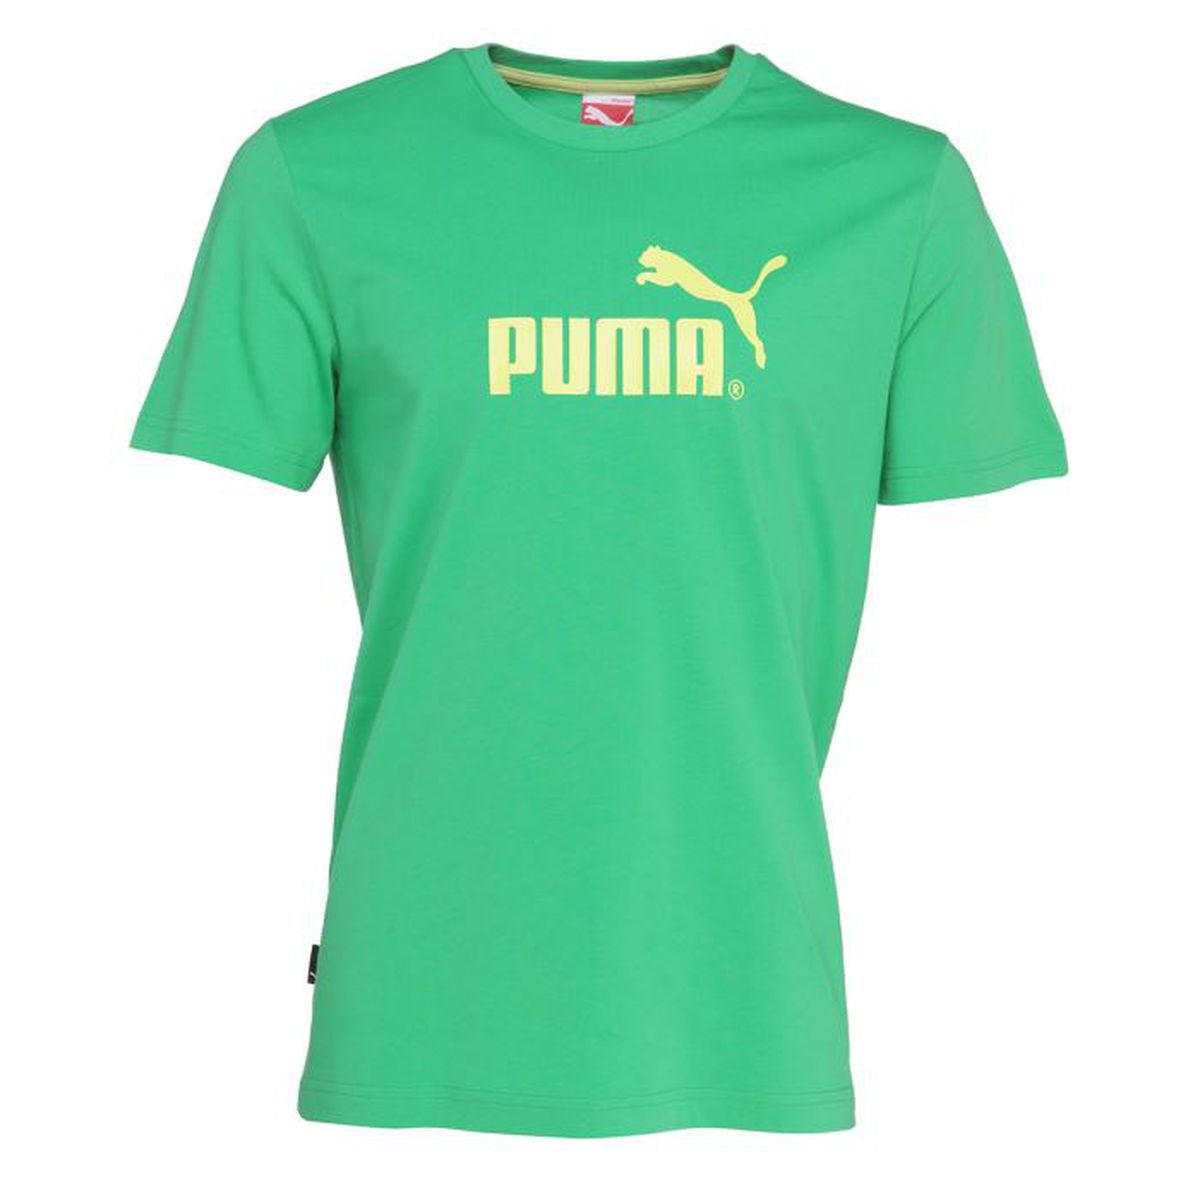 puma t shirt homme vert achat vente t shirt cdiscount. Black Bedroom Furniture Sets. Home Design Ideas